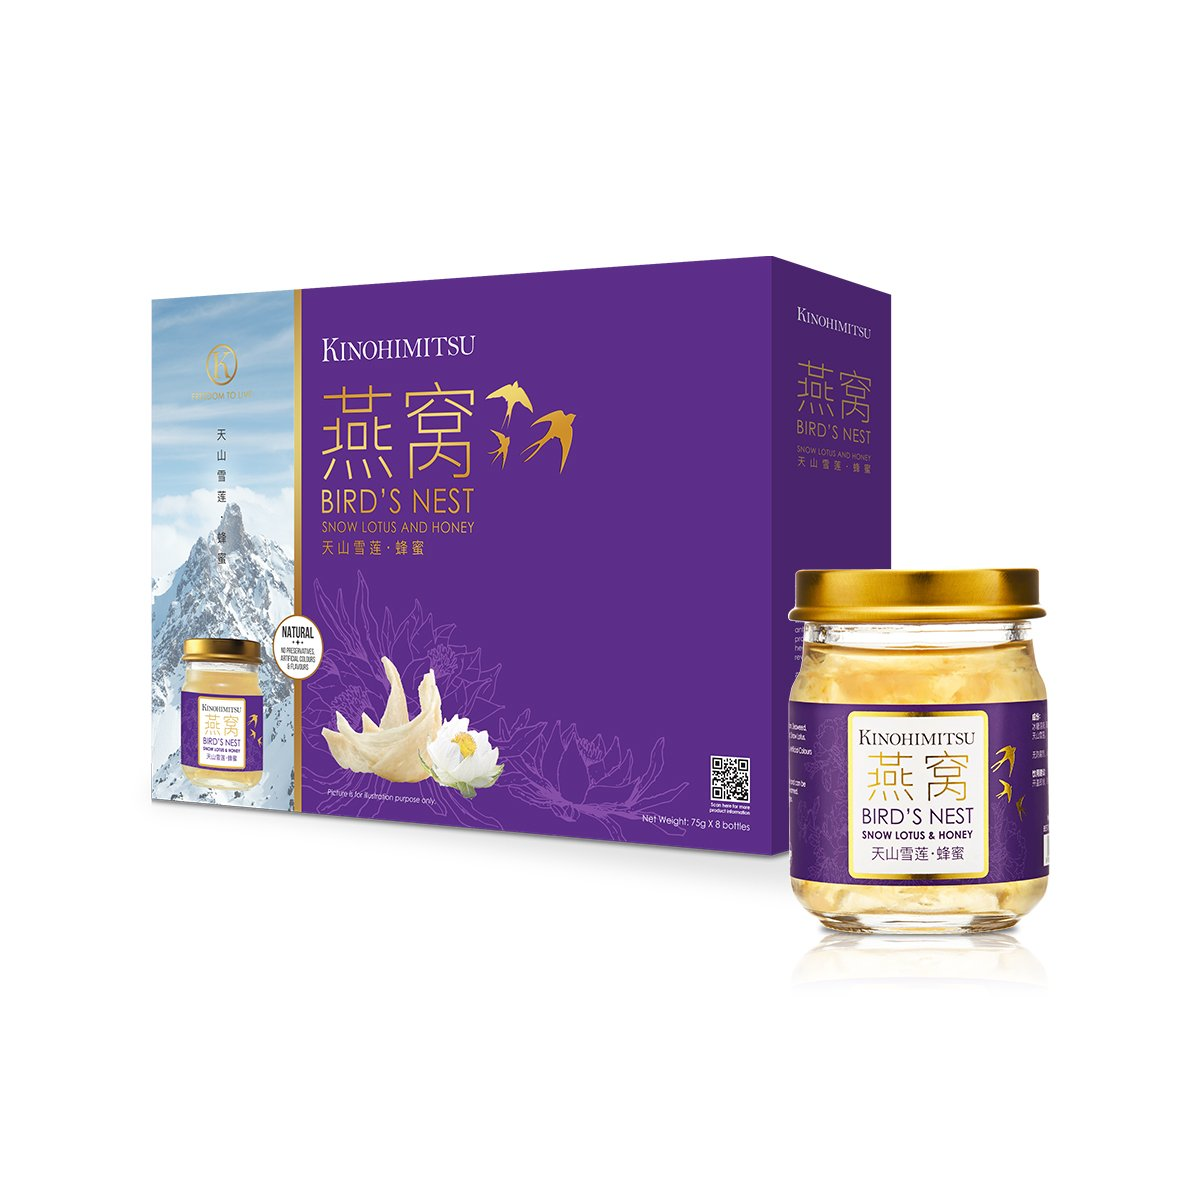 Kinohimitsu Bird's Nest with Snow Lotus & Honey 8's